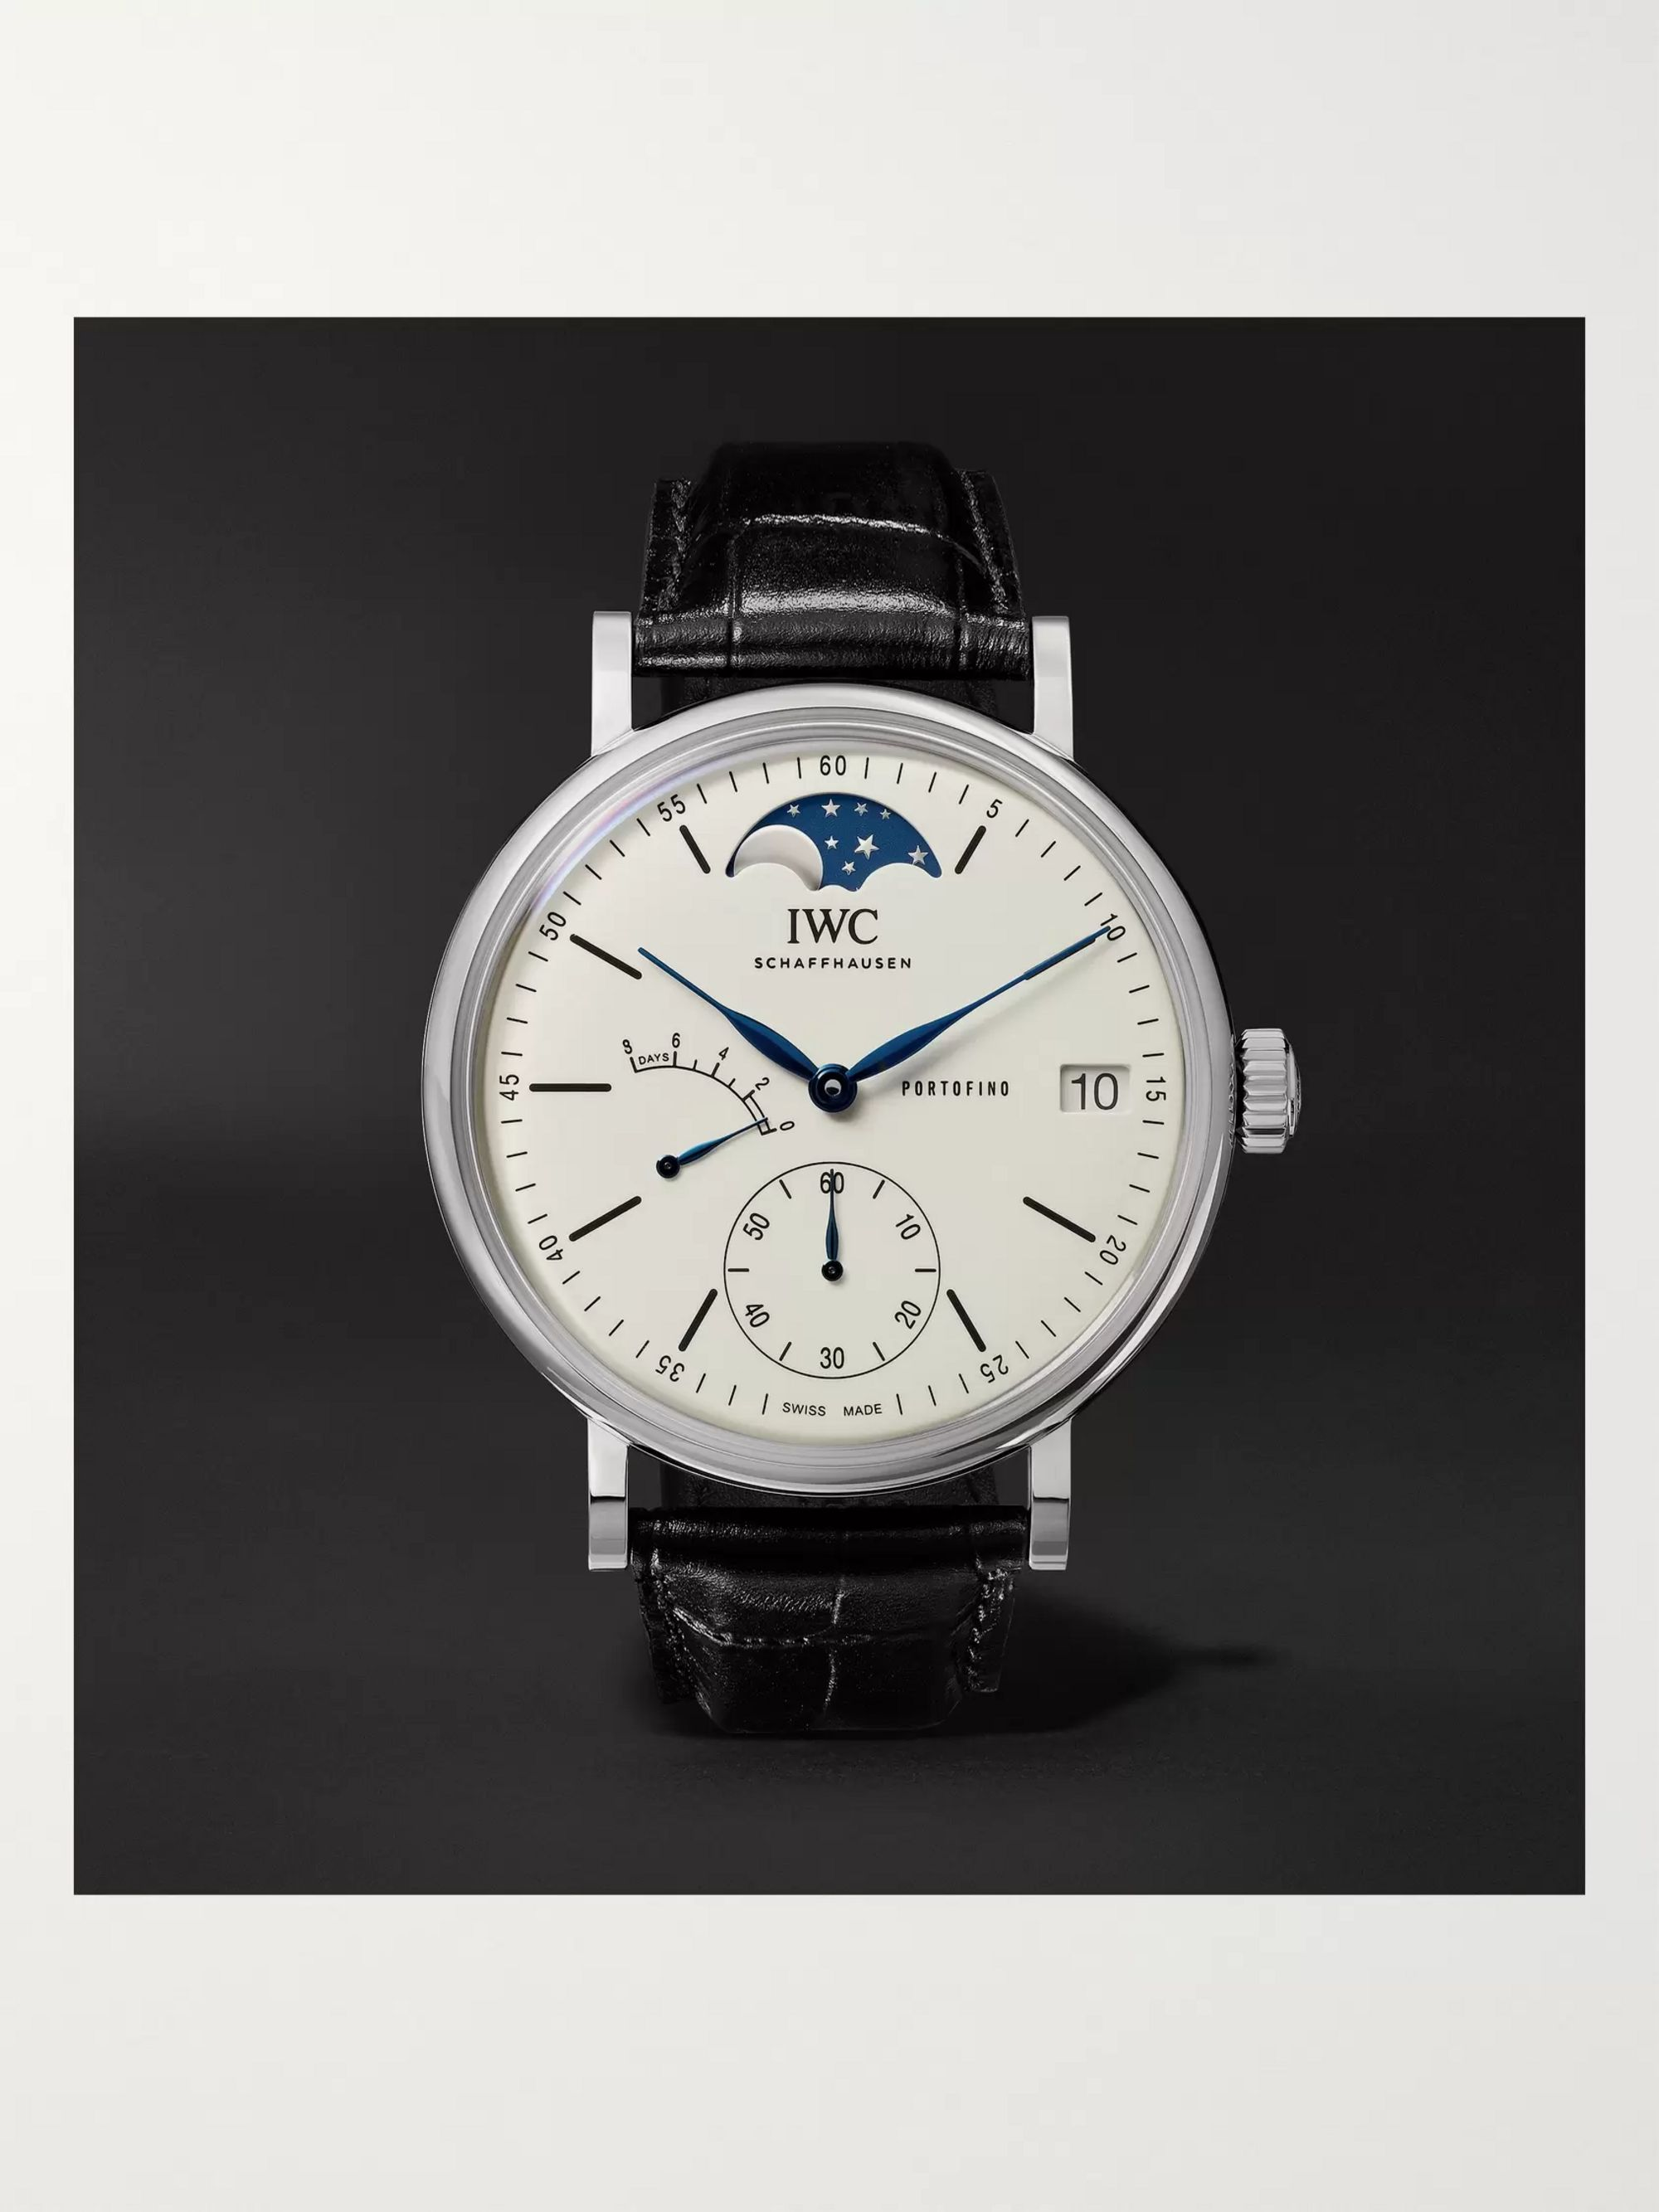 IWC SCHAFFHAUSEN Portofino Hand-Wound Moon Phase 45mm Stainless Steel and Alligator Watch